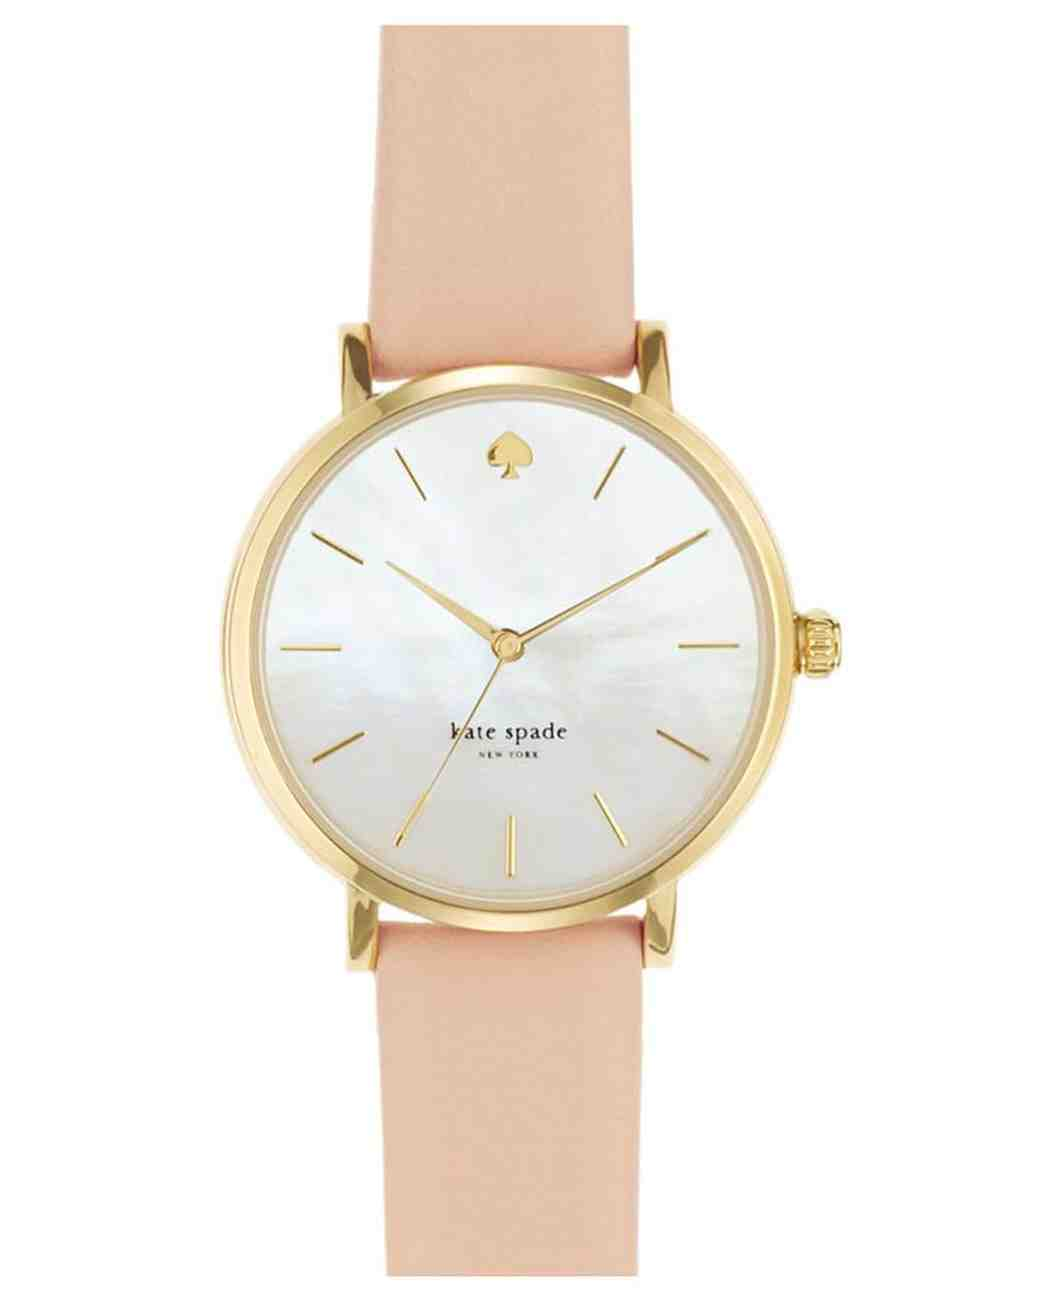 valentines-day-gifts-for-her-kate-spade-watch-0216.jpg